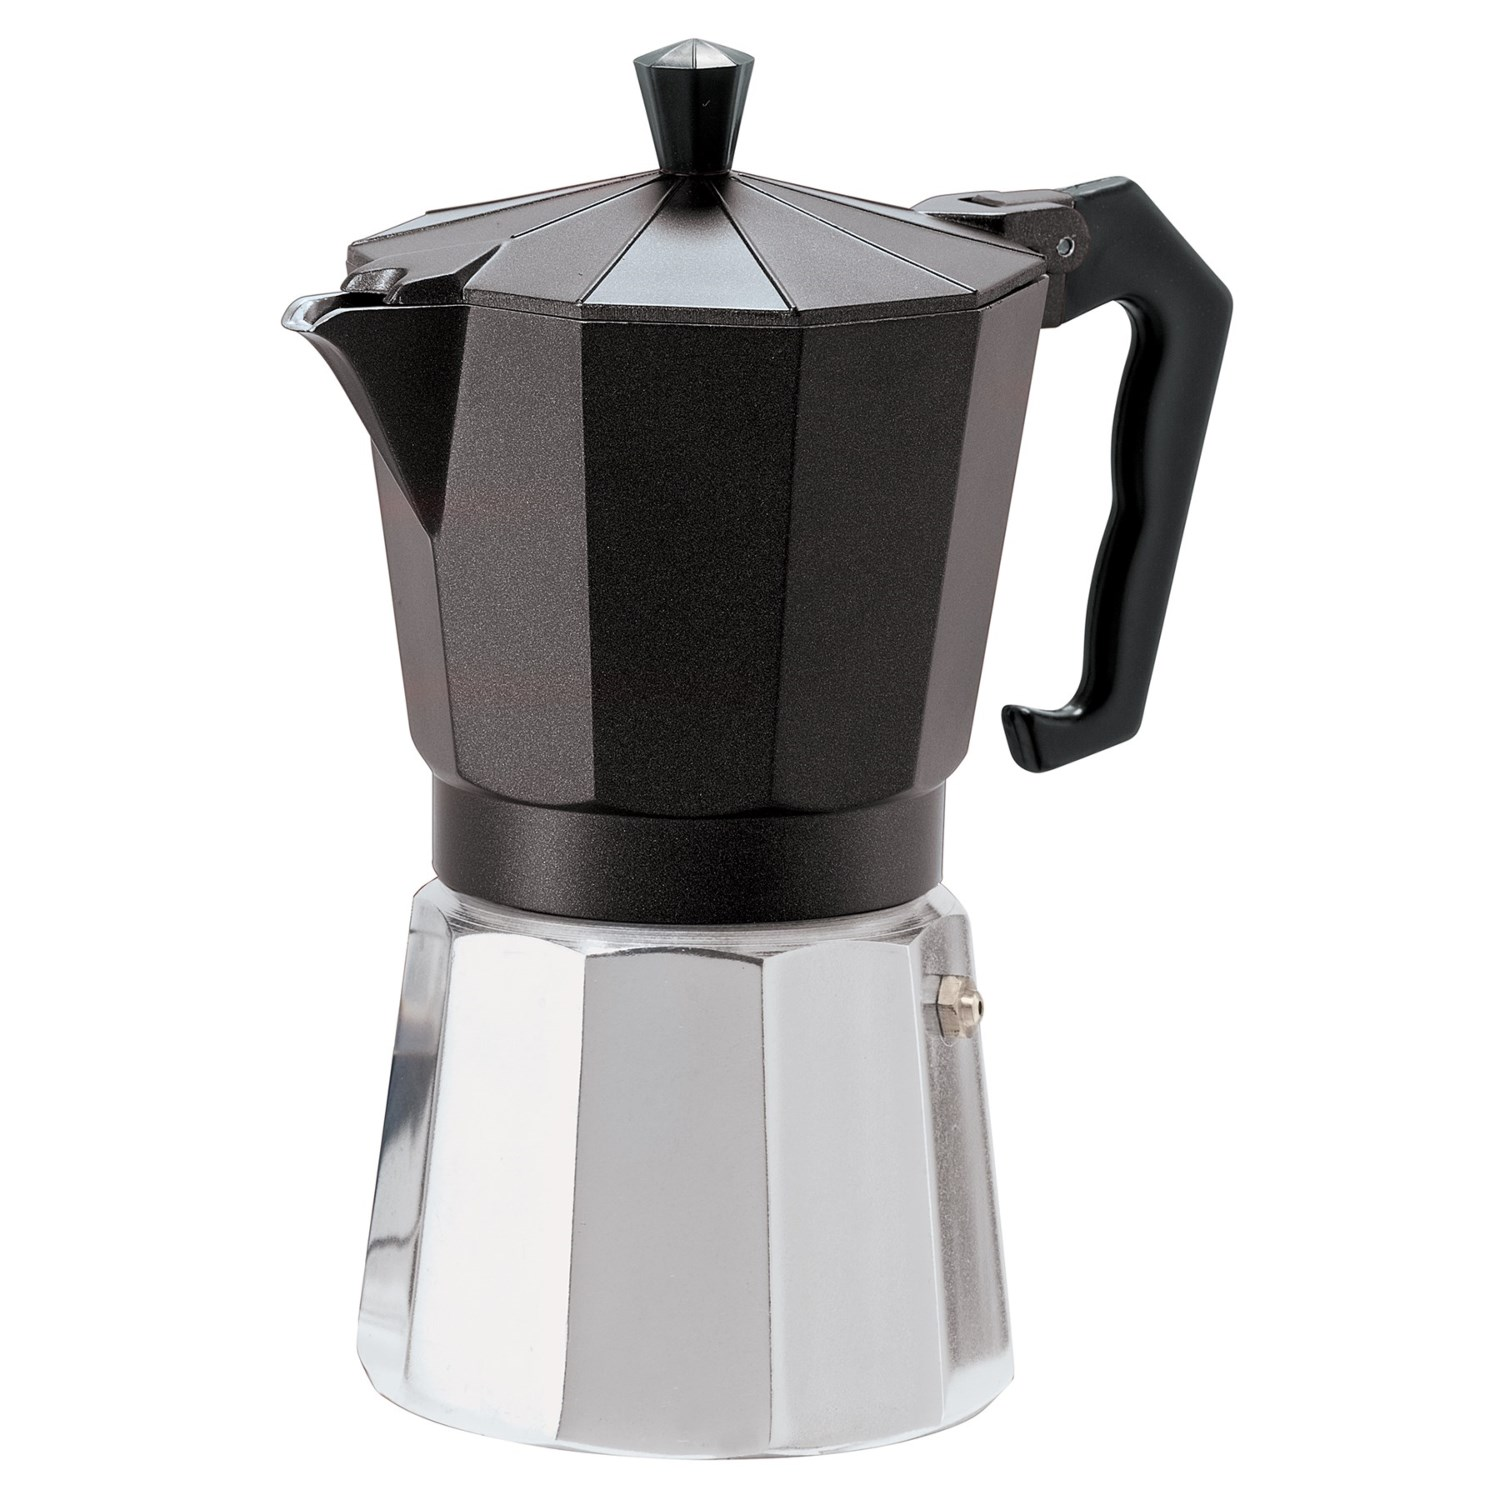 Oggi Coffee Carafe Replacement Parts Cardbk Co